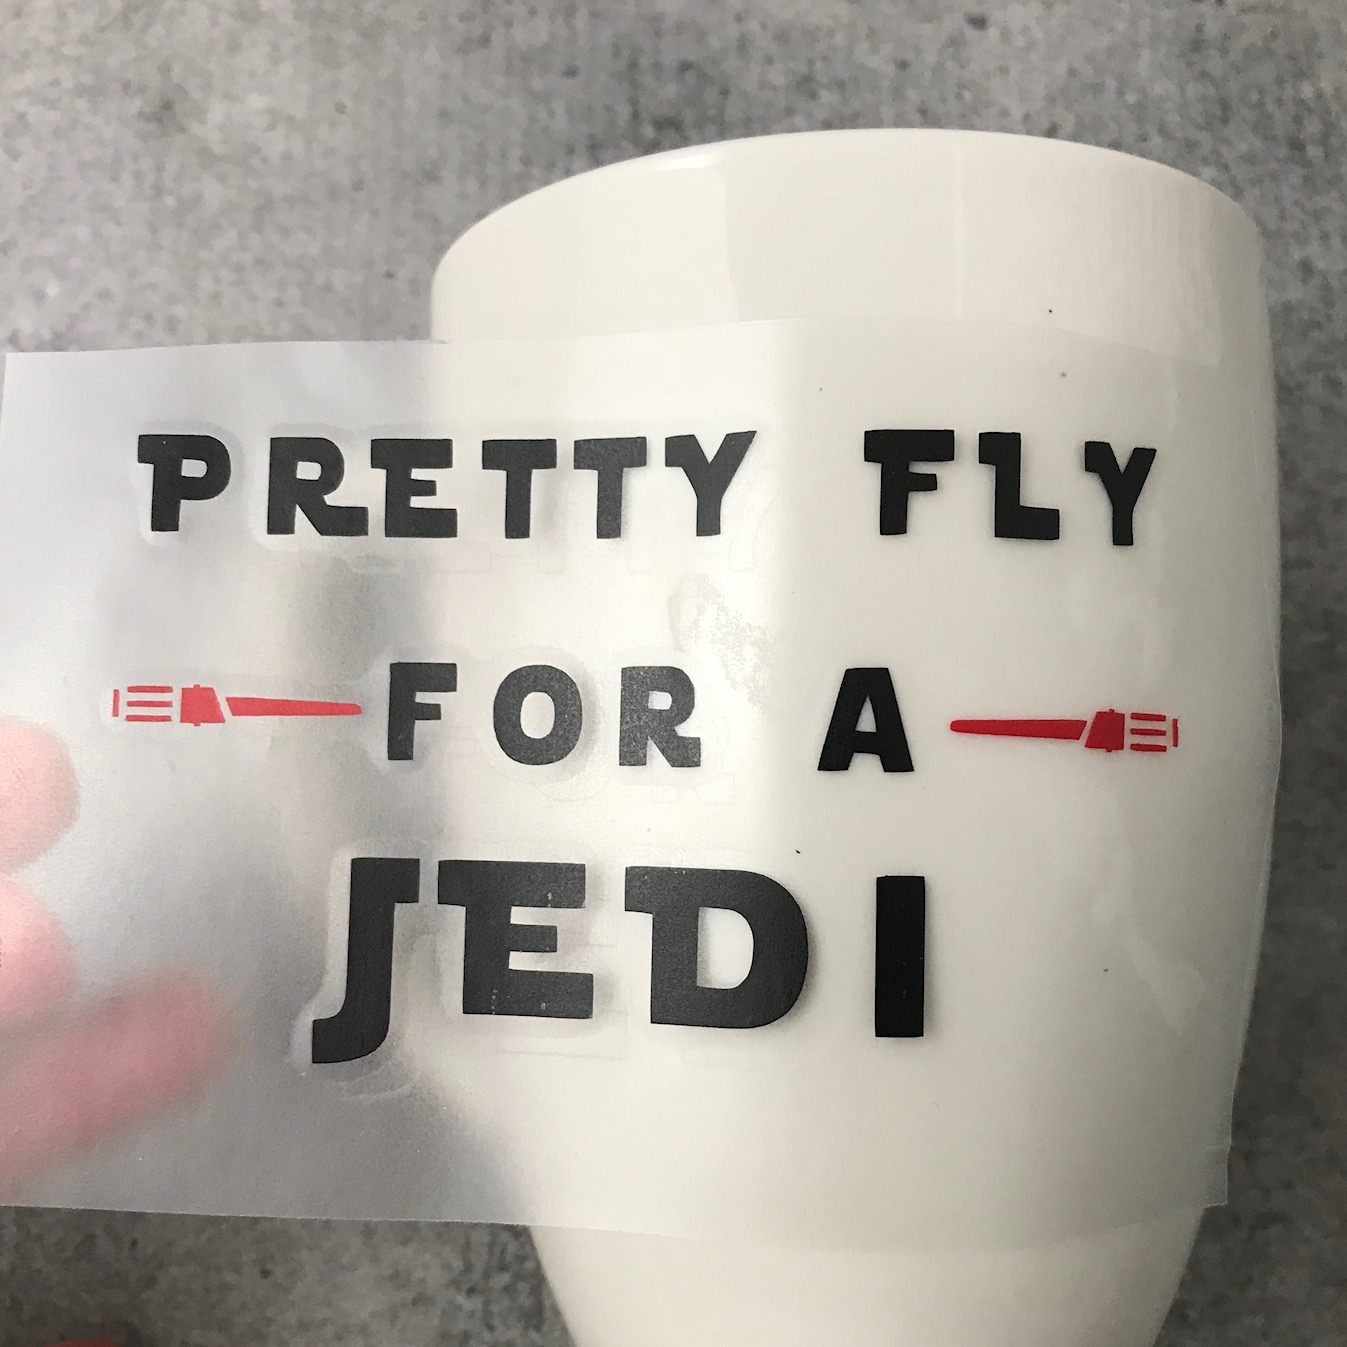 Star Wars Valentine's Day, Star Wars Valentine's Day Idea, Star Wars Mug, DIY Star Wars Mug